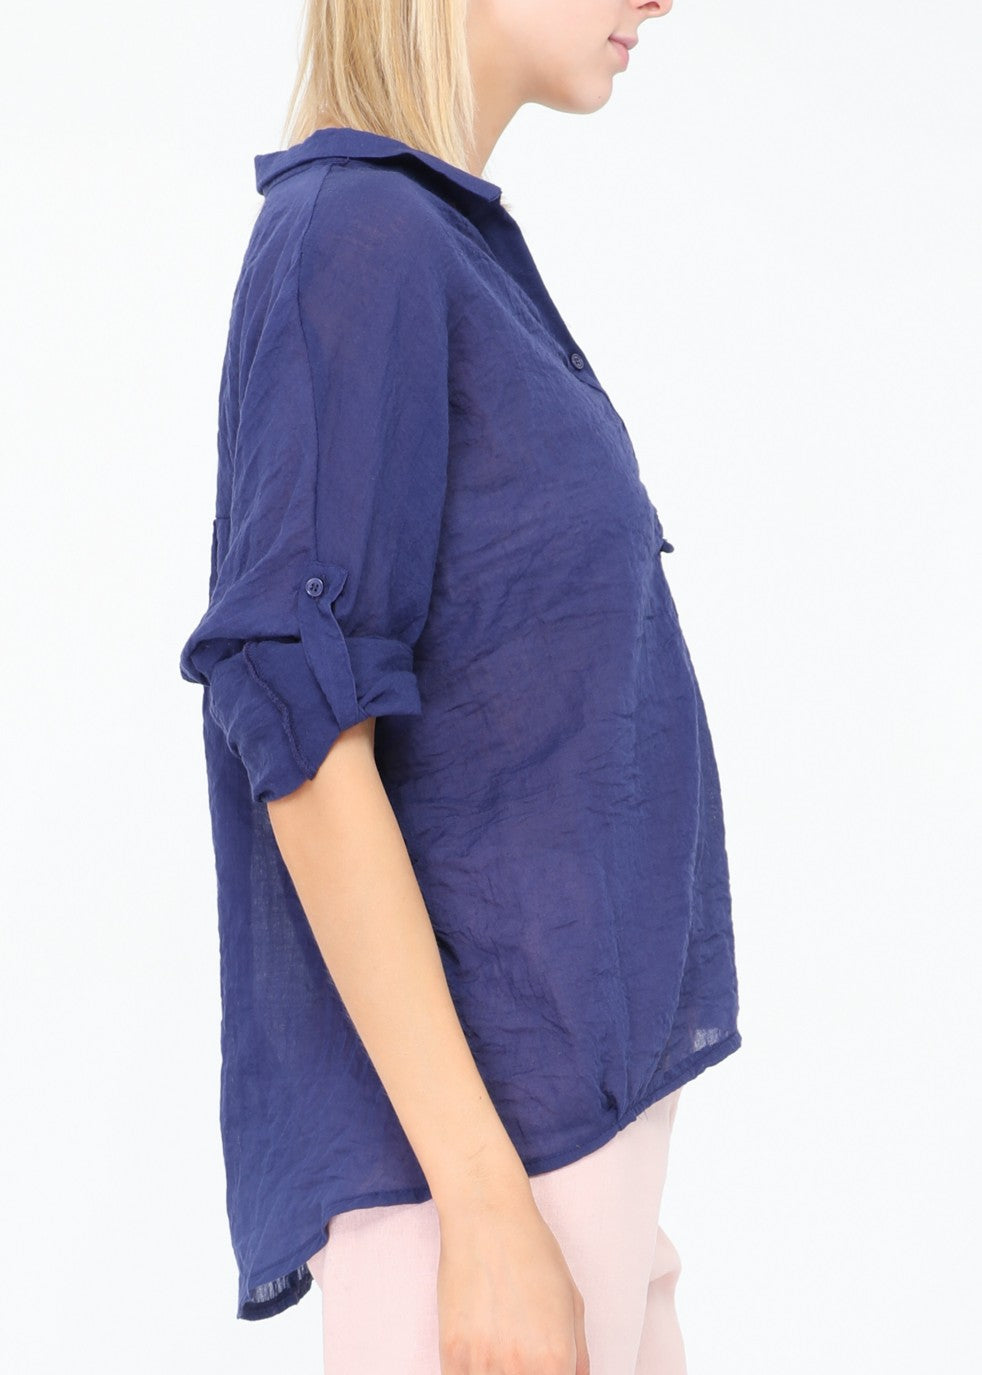 DARLA - Summer Shirt - Dark Blue